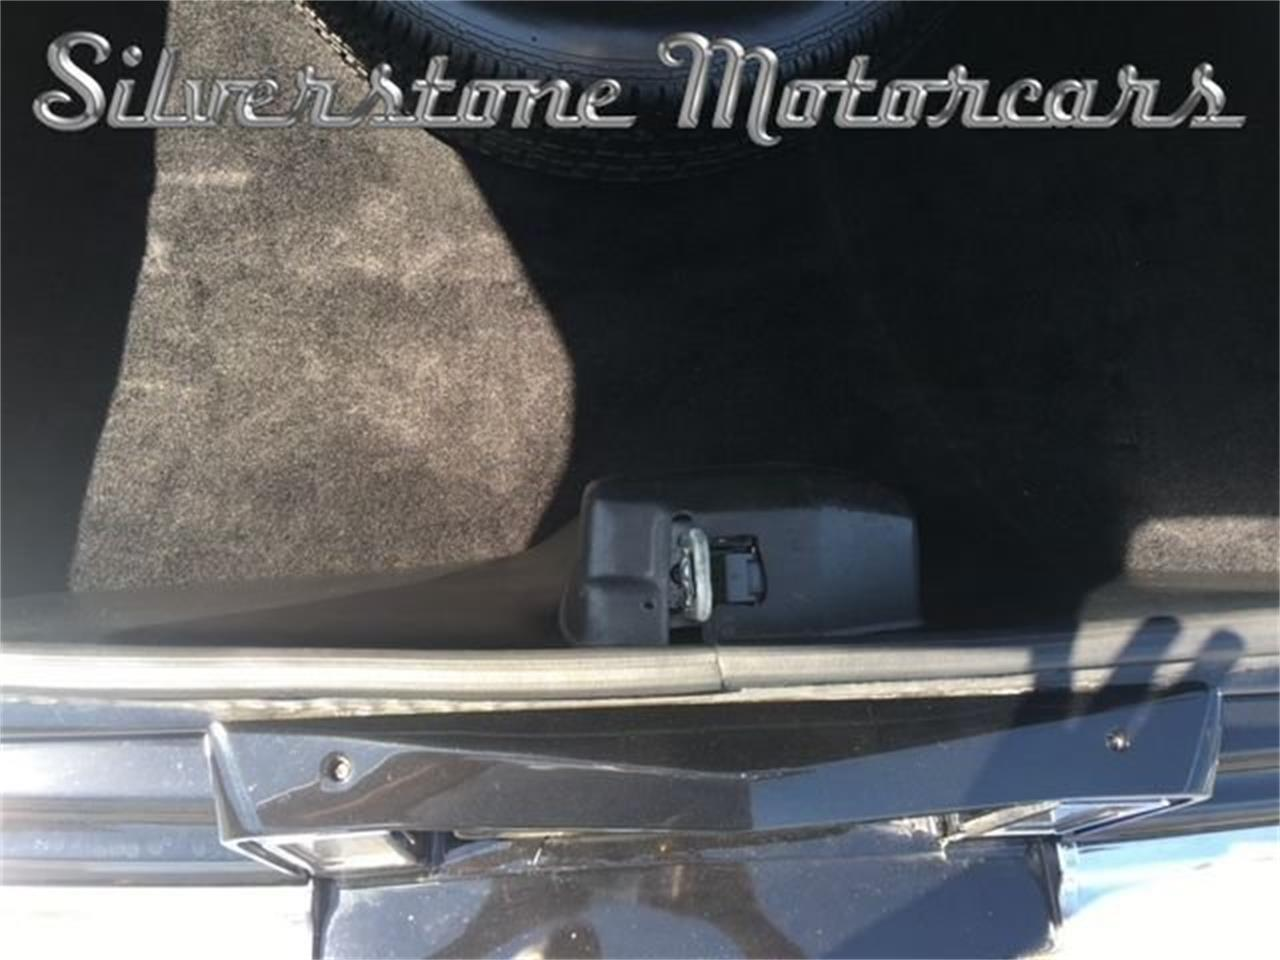 Large Picture of '81 Cadillac Fleetwood located in Massachusetts - $45,000.00 Offered by Silverstone Motorcars - NIW1